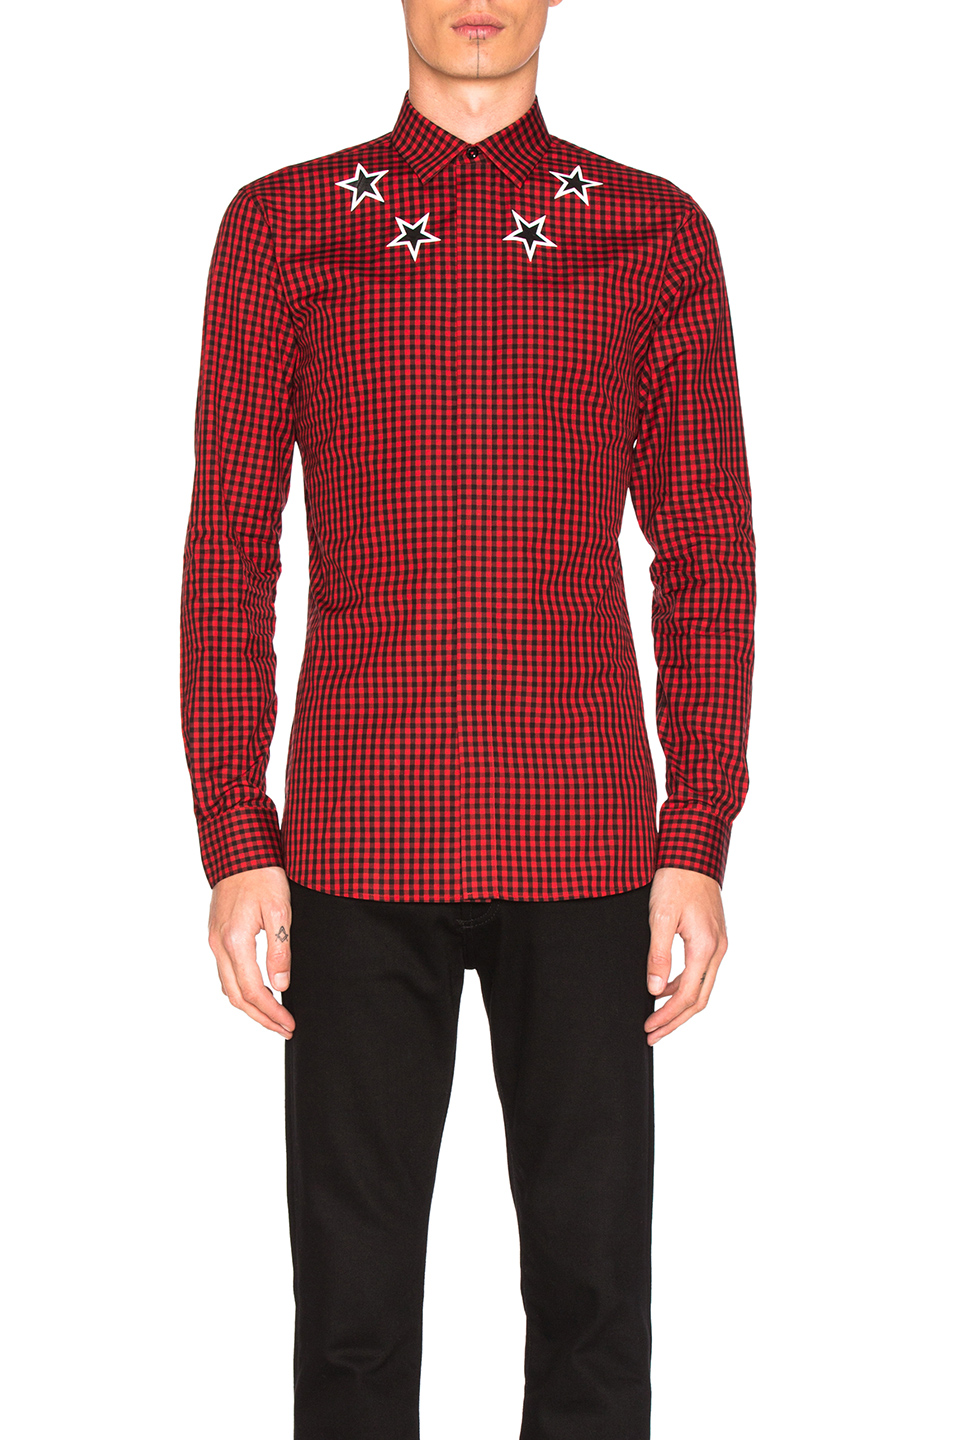 GIVENCHY Plaid Shirt in Red,Checkered & Plaid